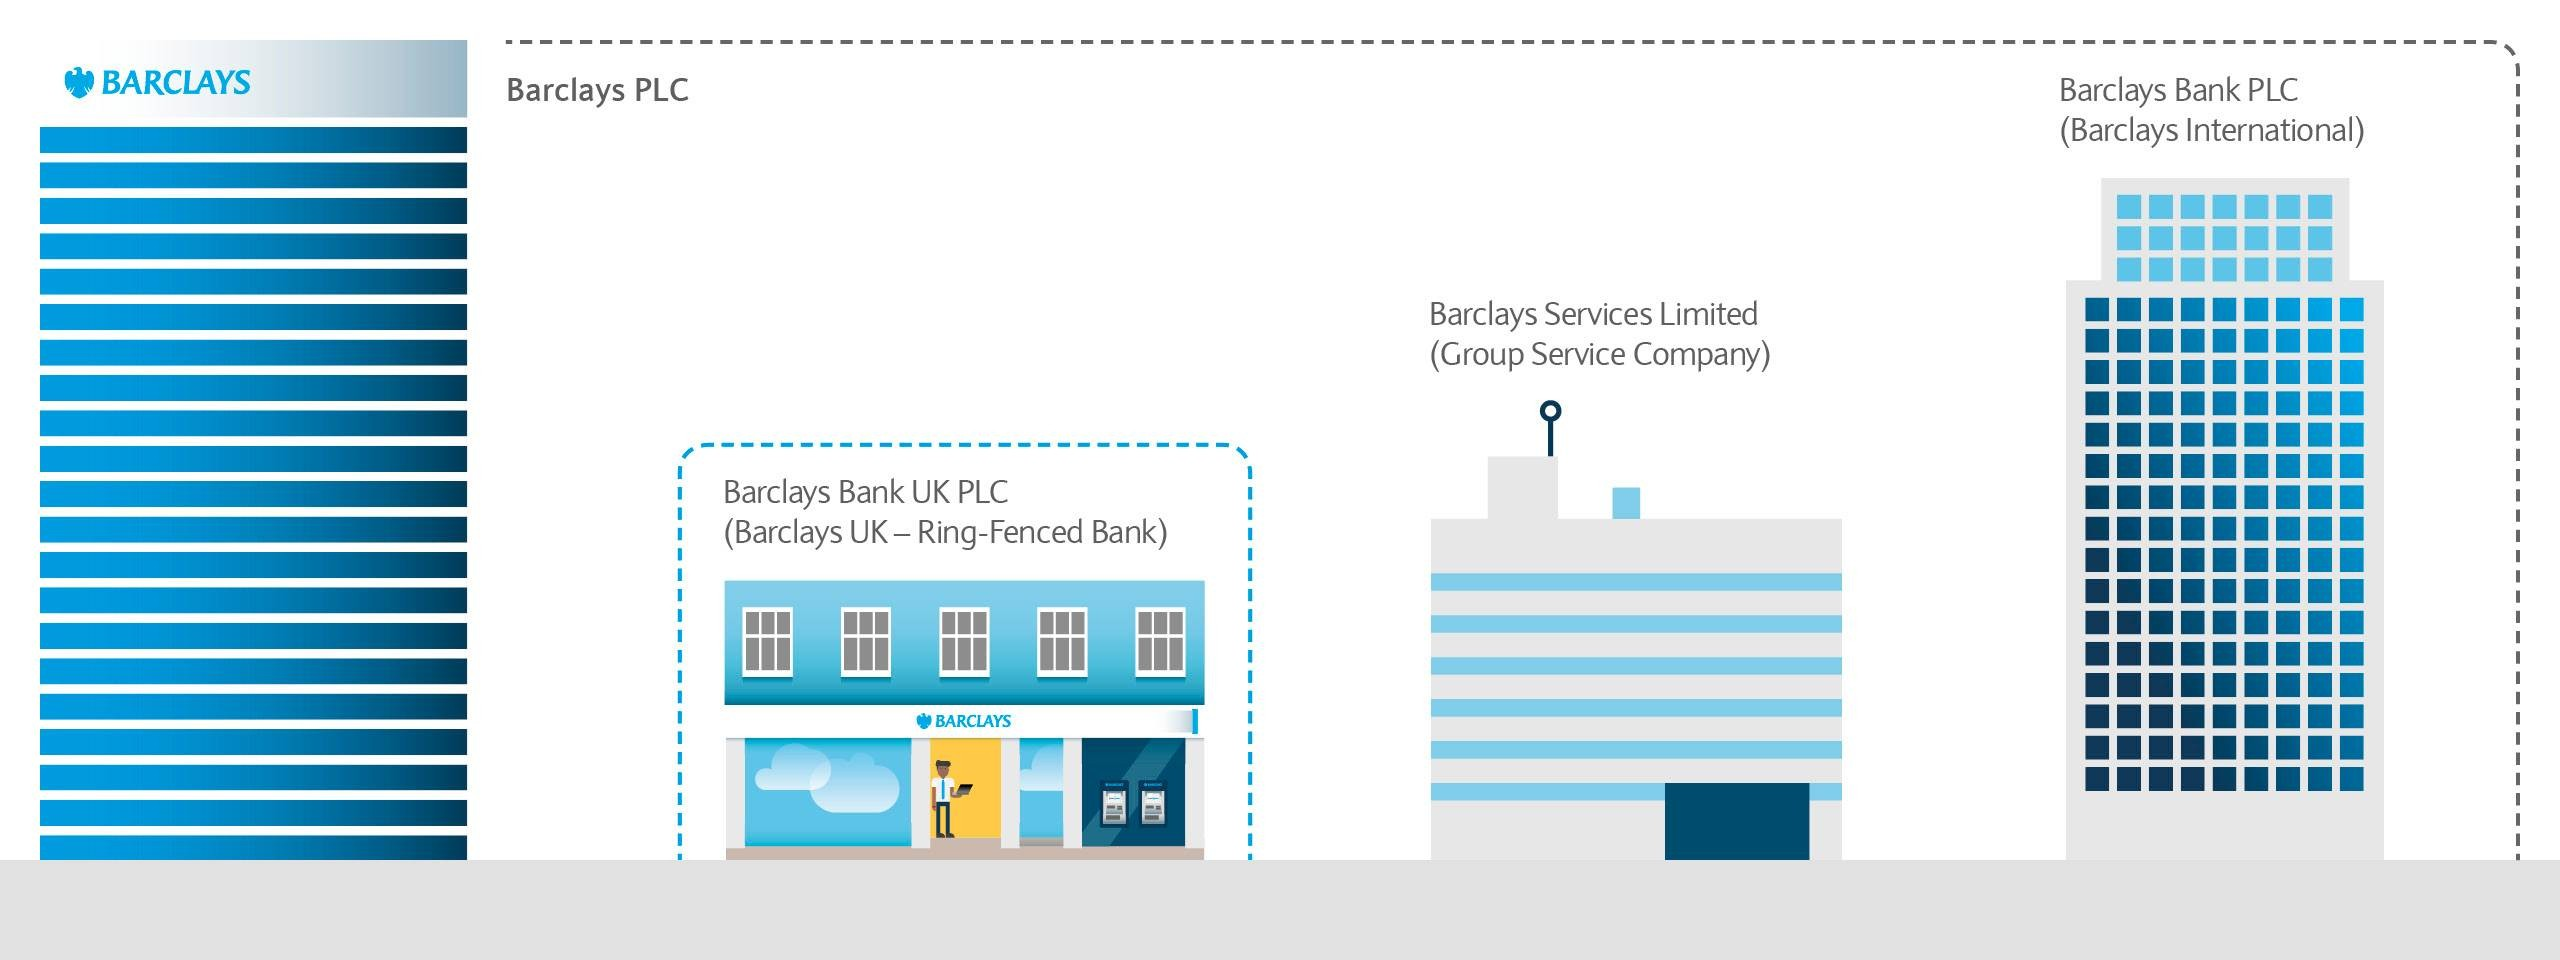 Barclays Group Structure and Leadership | Barclays